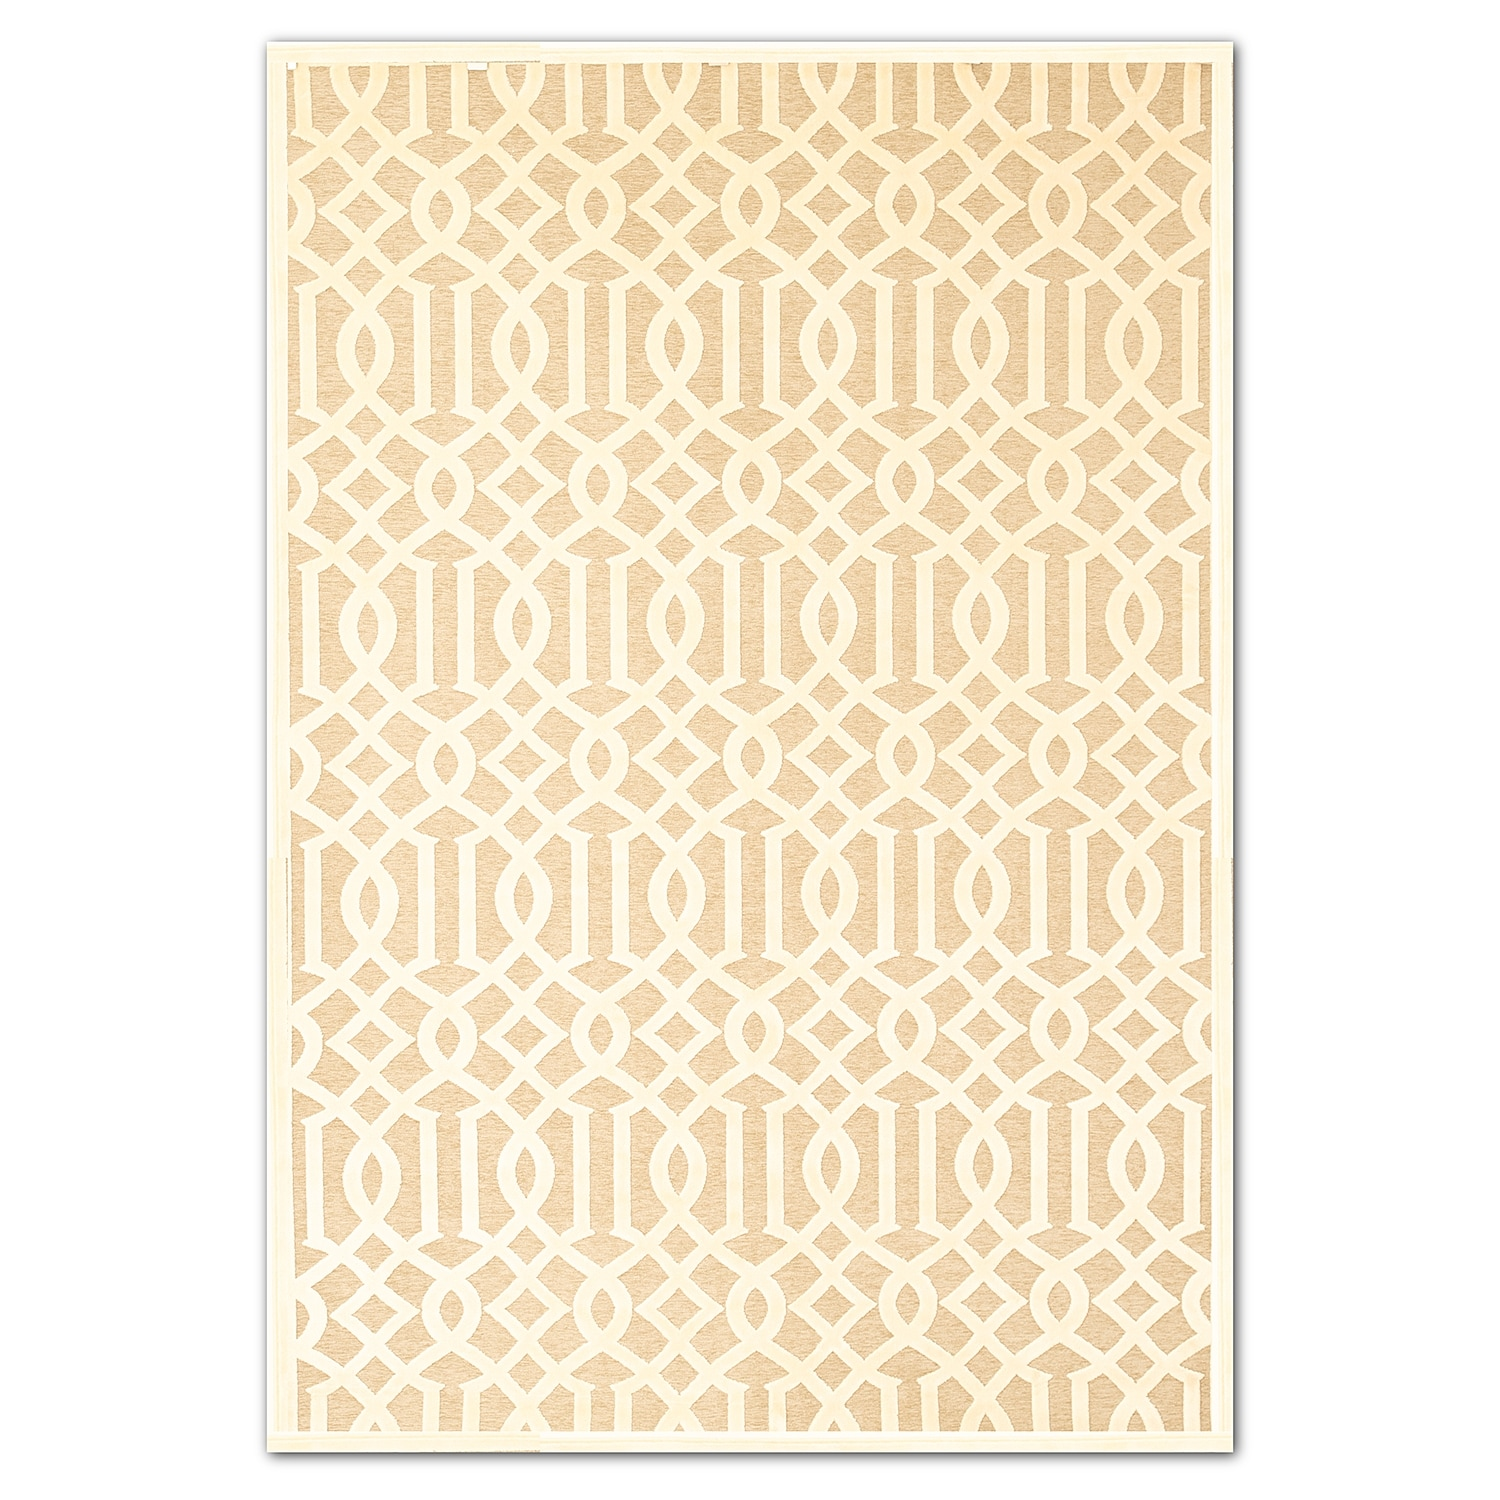 Rugs - Napa Baron 5' x 8' Area Rug - Ivory and Beige